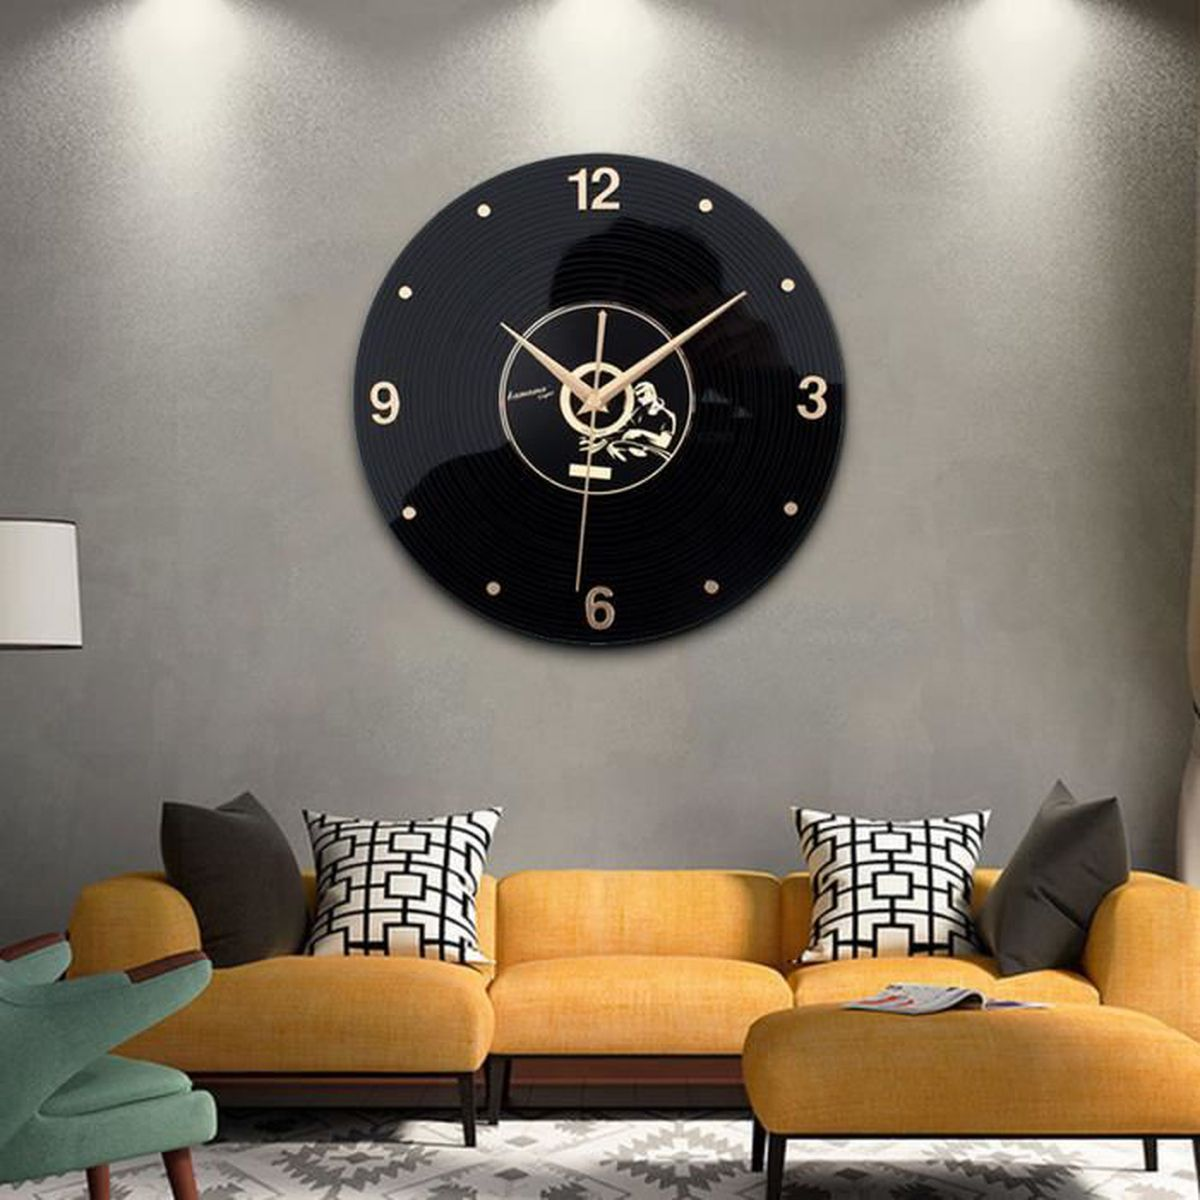 meilleur de deco chambre adulte avec horloge murale retro. Black Bedroom Furniture Sets. Home Design Ideas